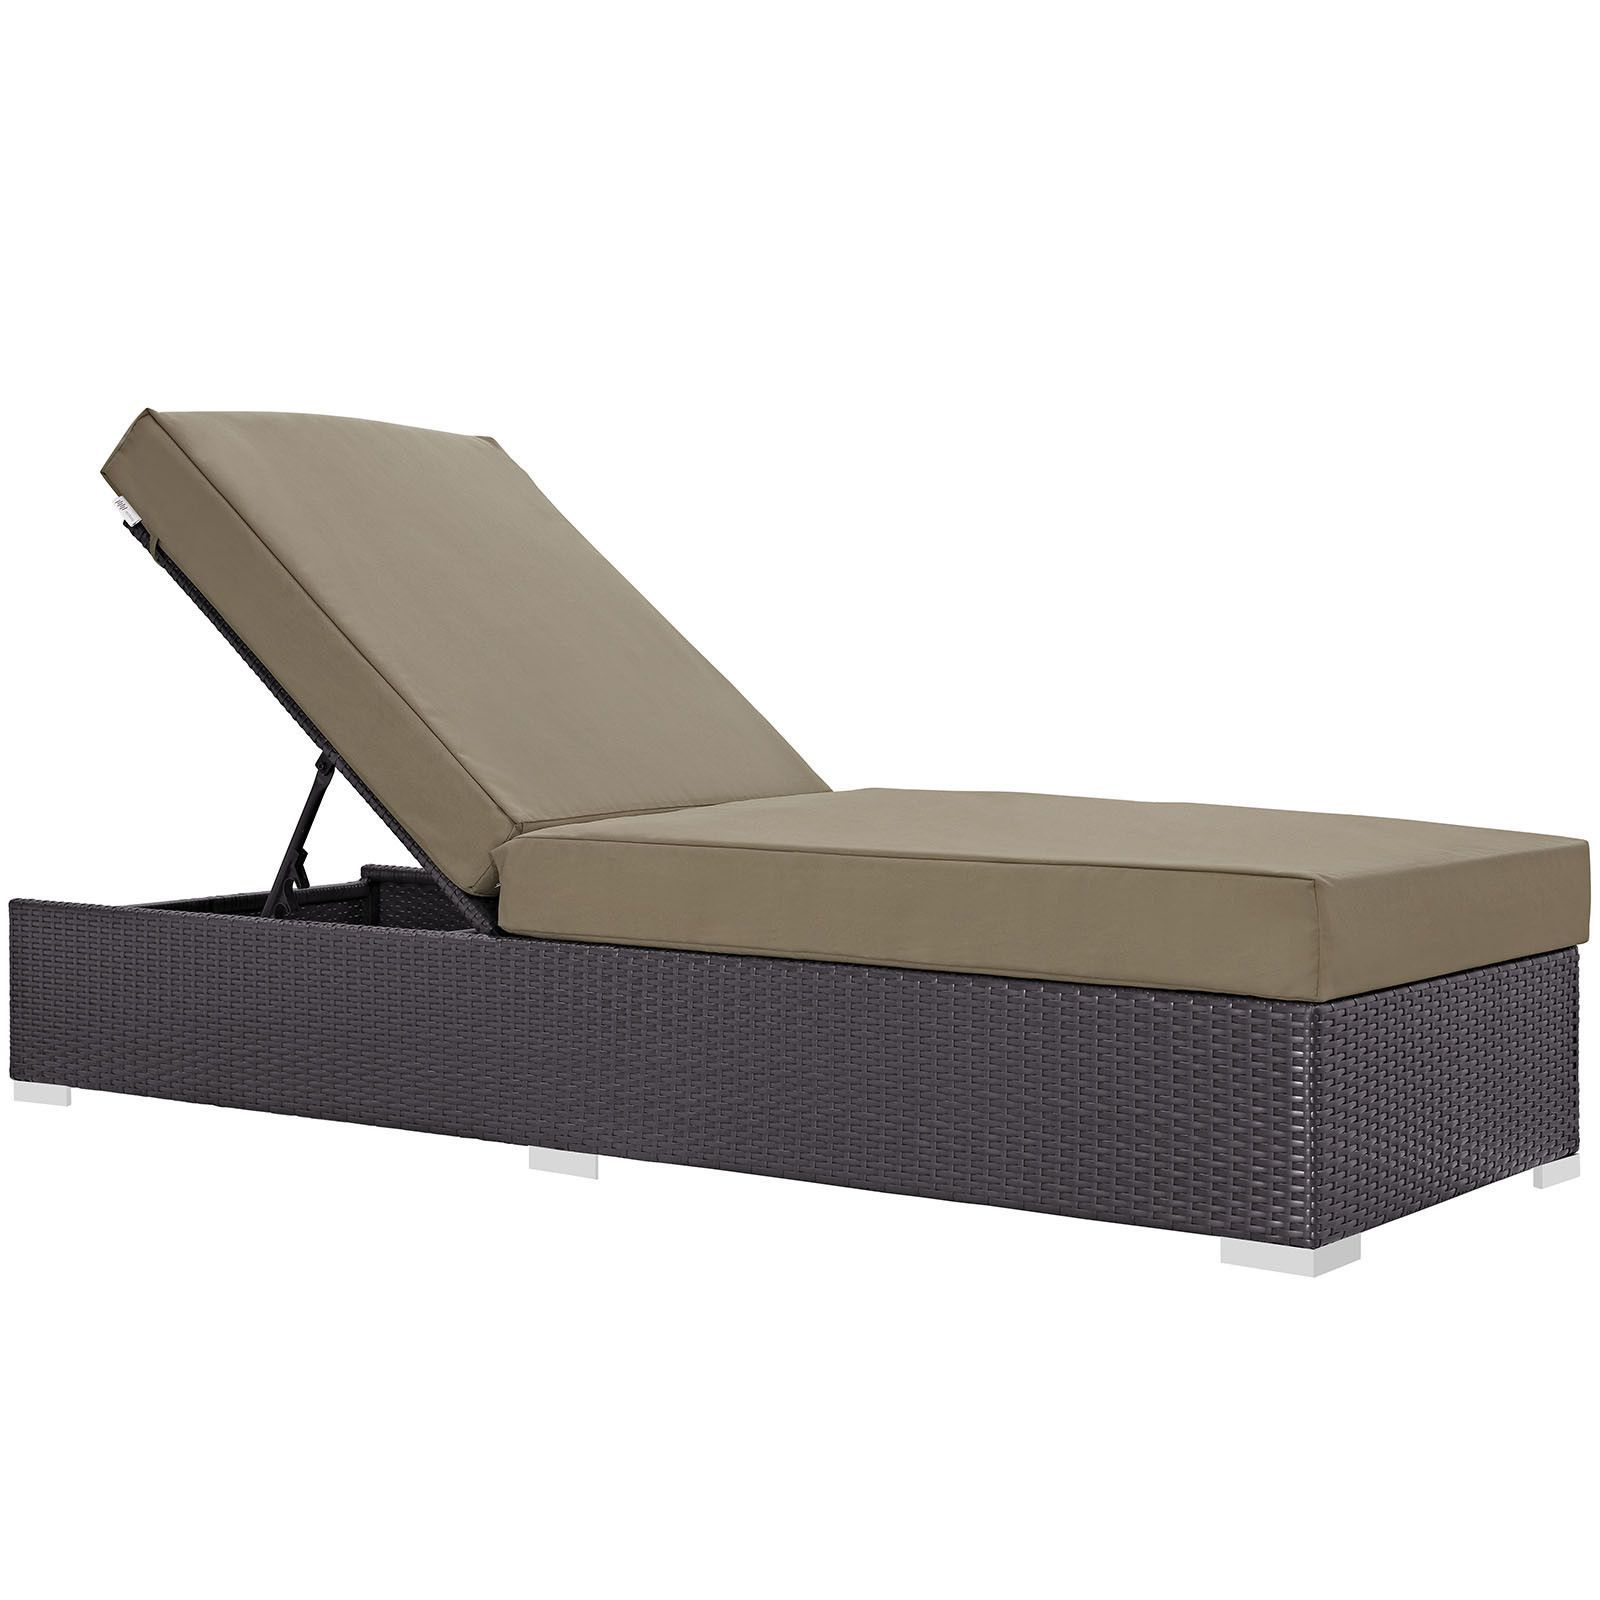 Buy Convene Outdoor Patio Chaise Lounge at ModelDeco for only